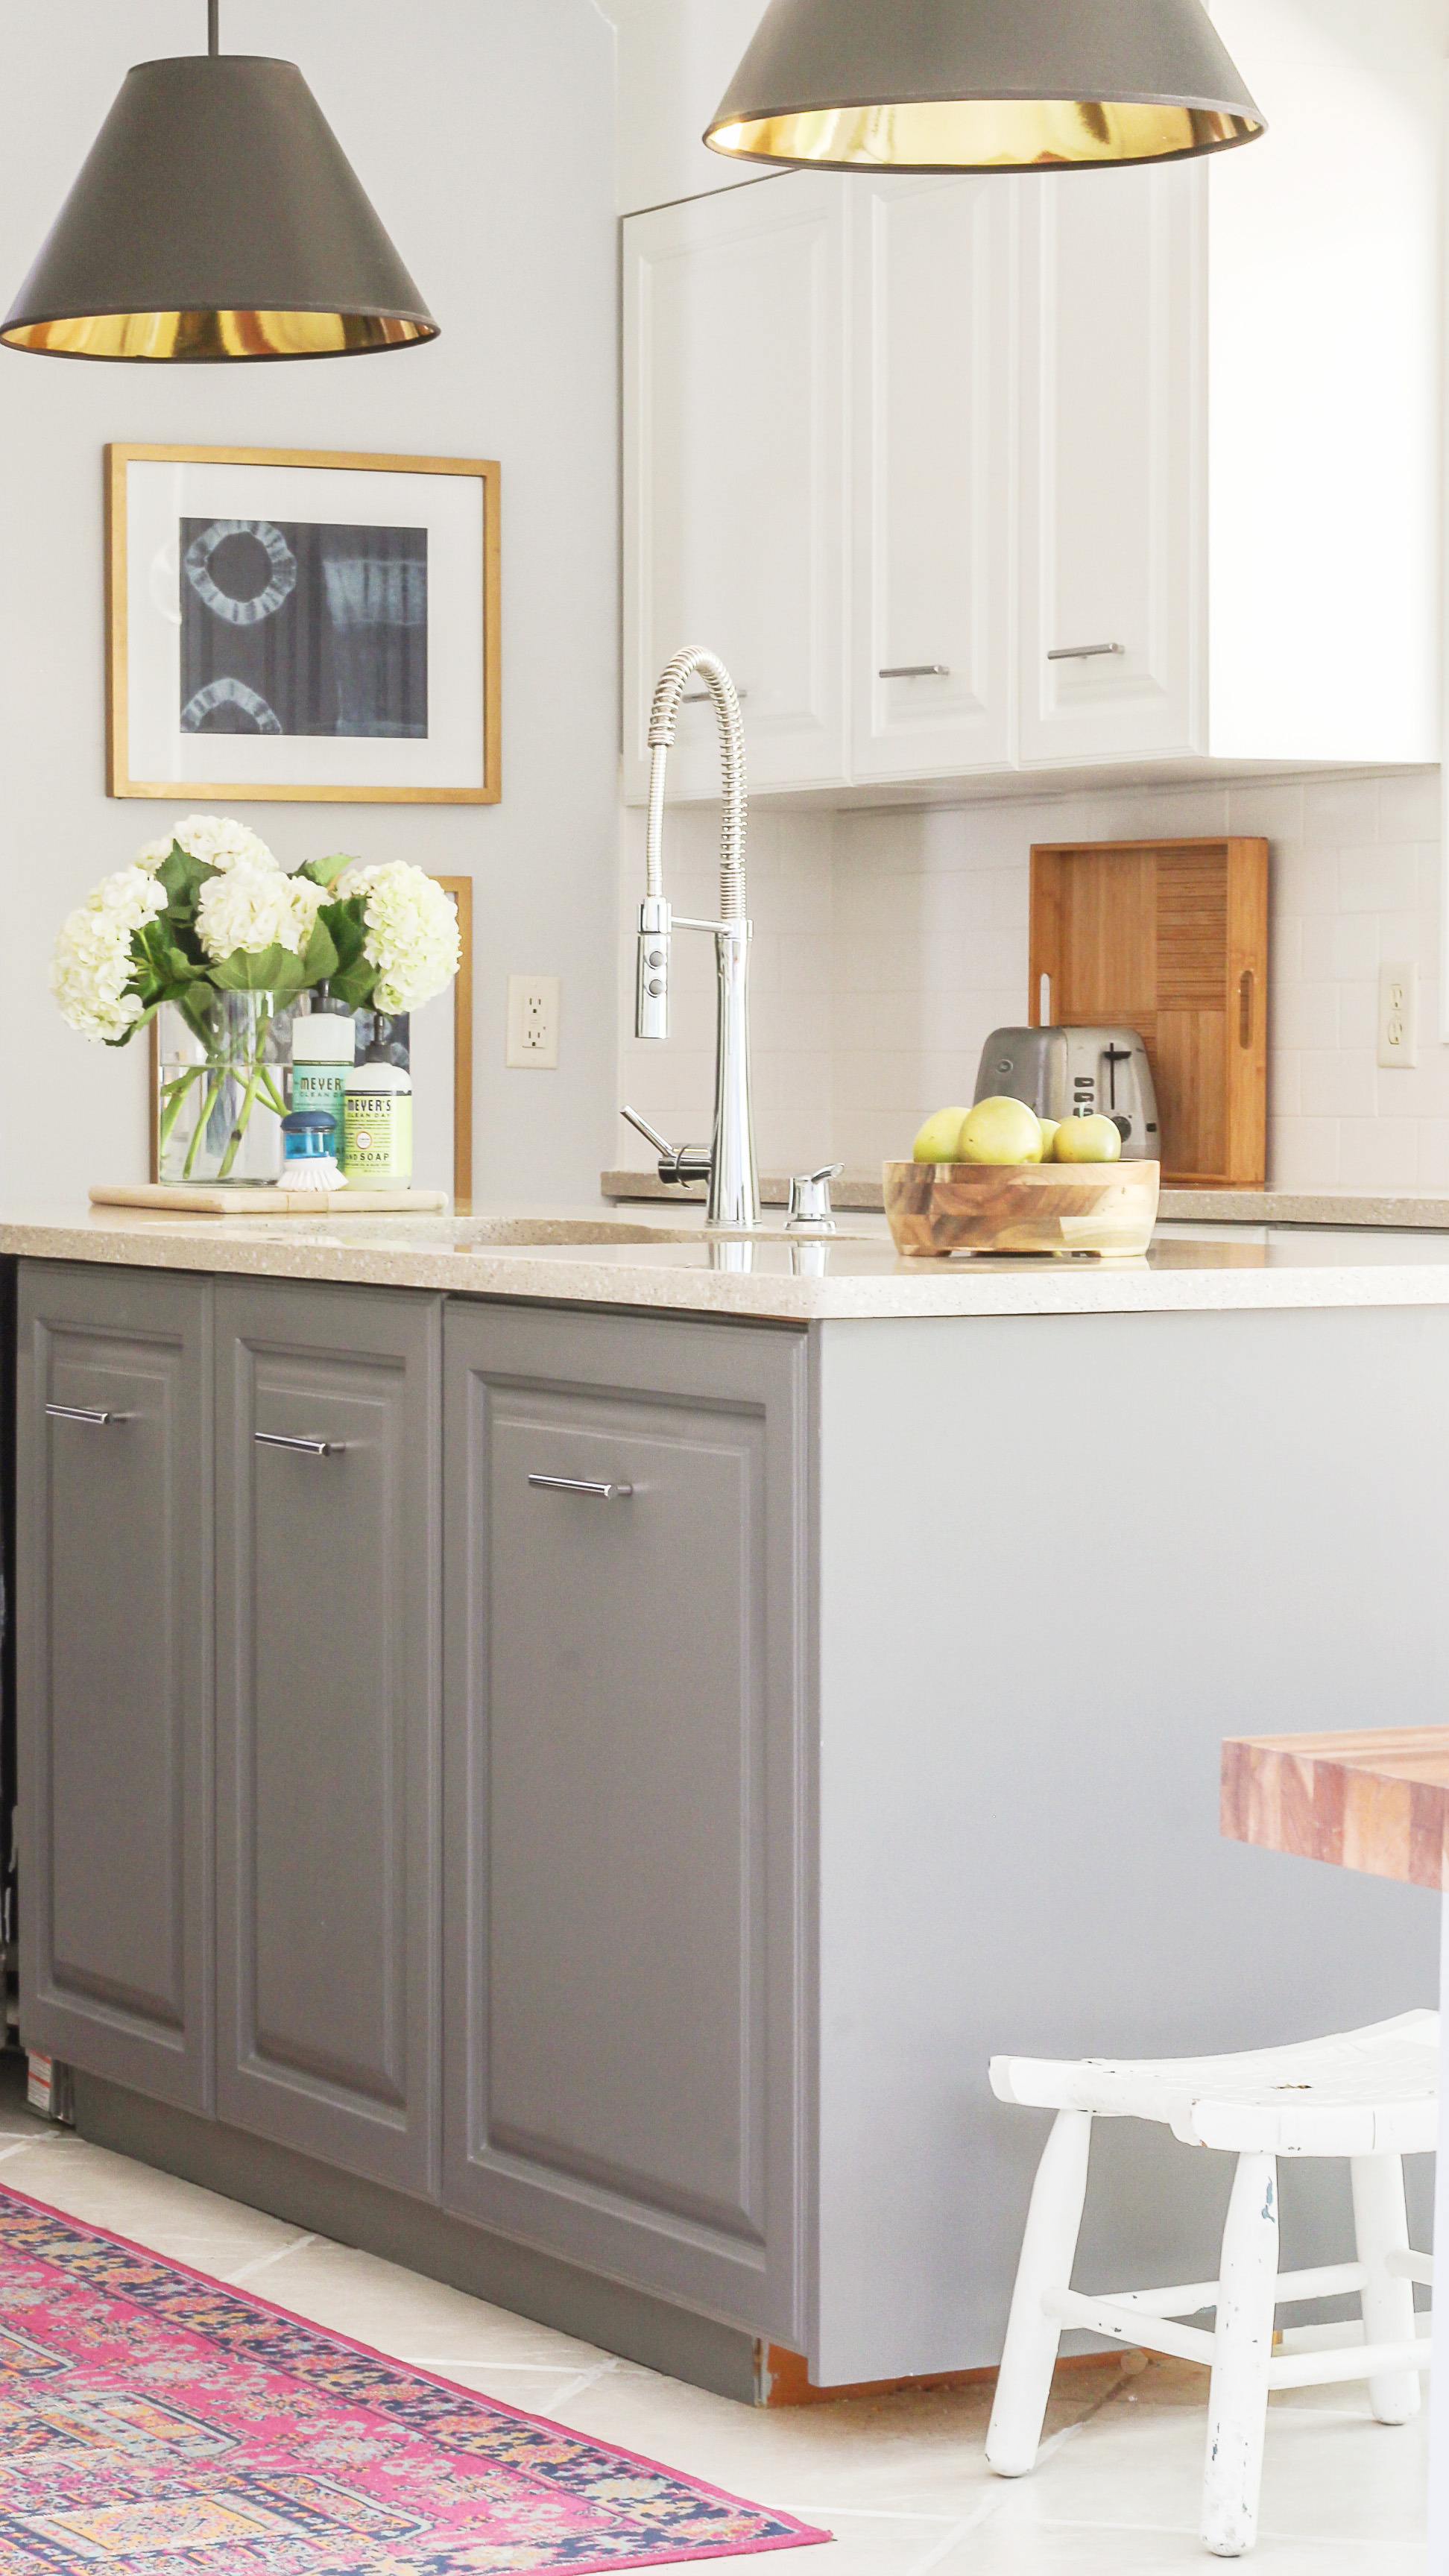 painting kitchen cabinets with milk paint 2